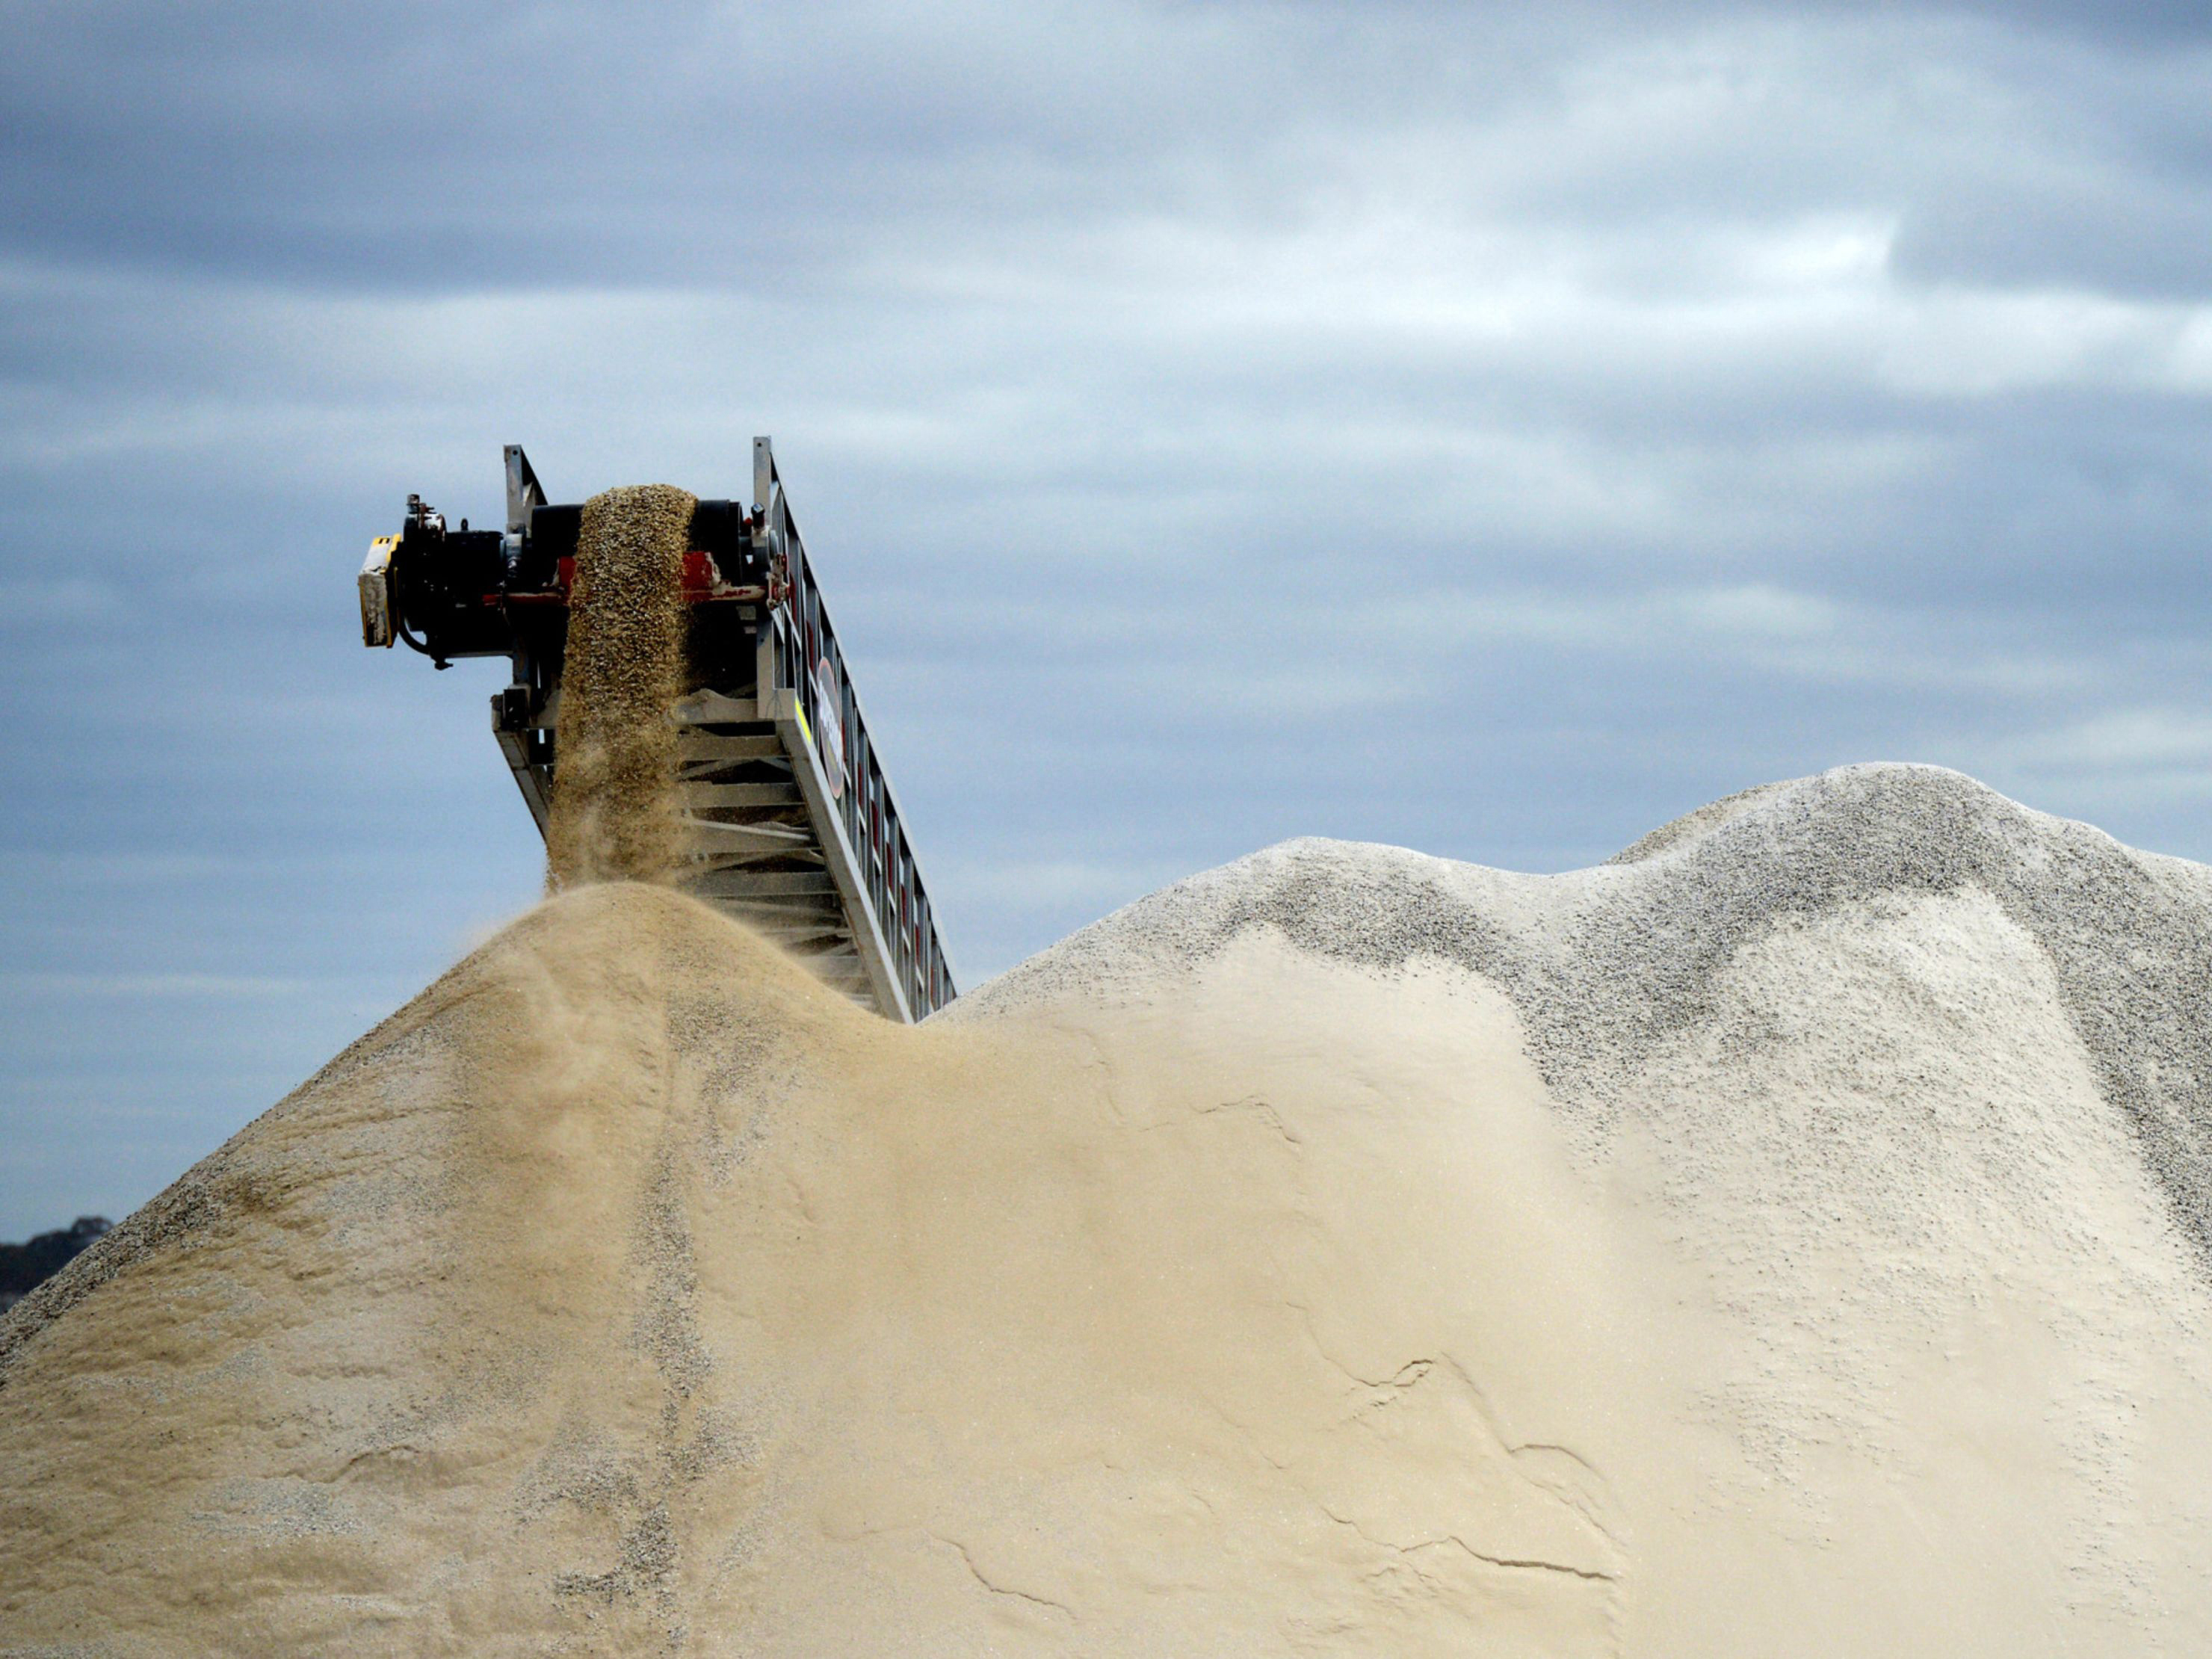 U.S. Launches Tool to Stake Claim to World's Rare Earth Minerals